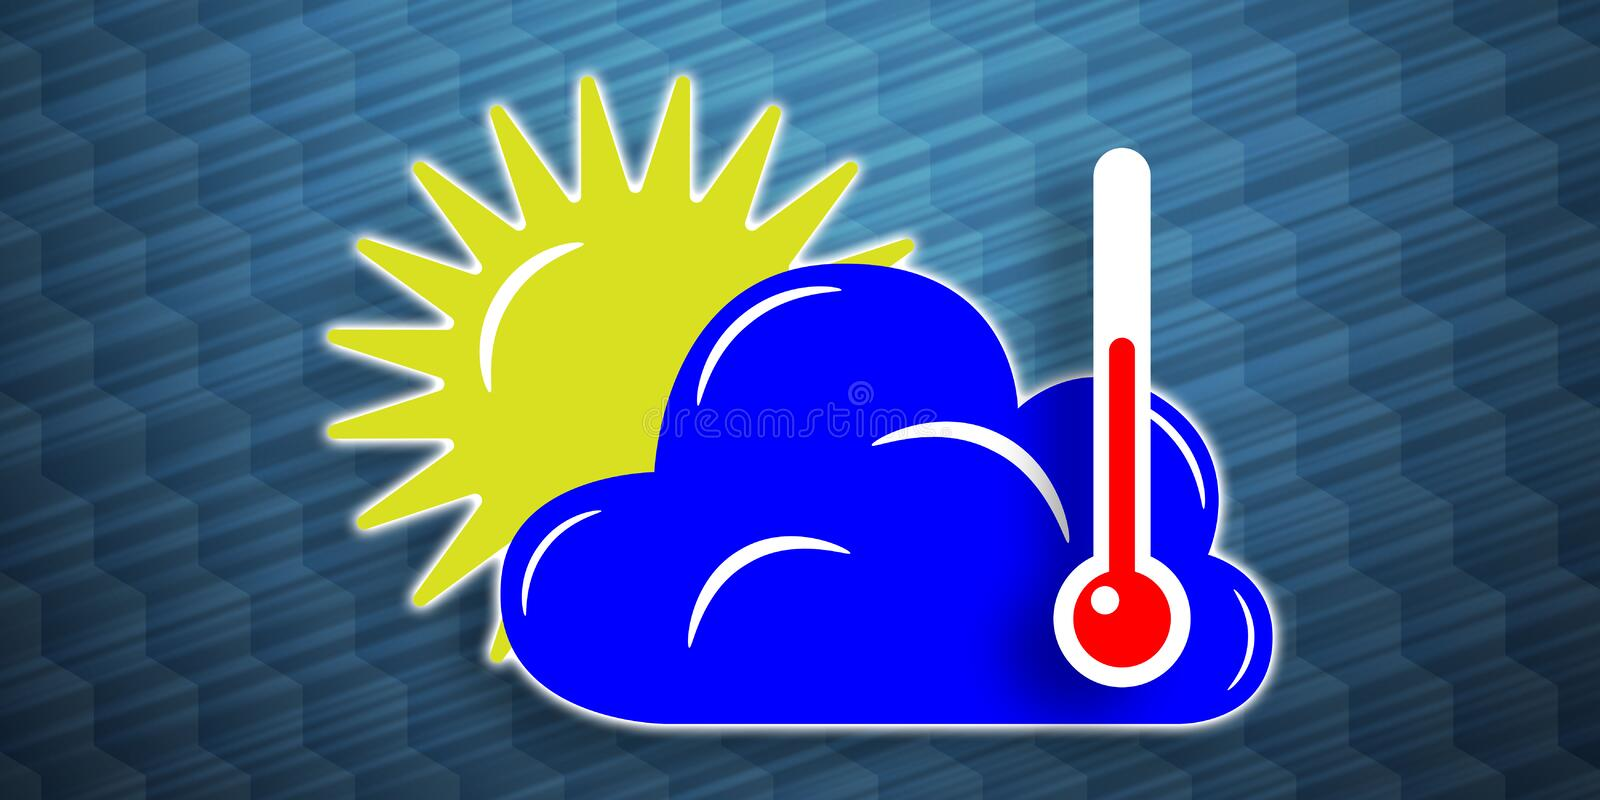 Concept of weather forecast. Illustration of a weather forecast concept royalty free illustration